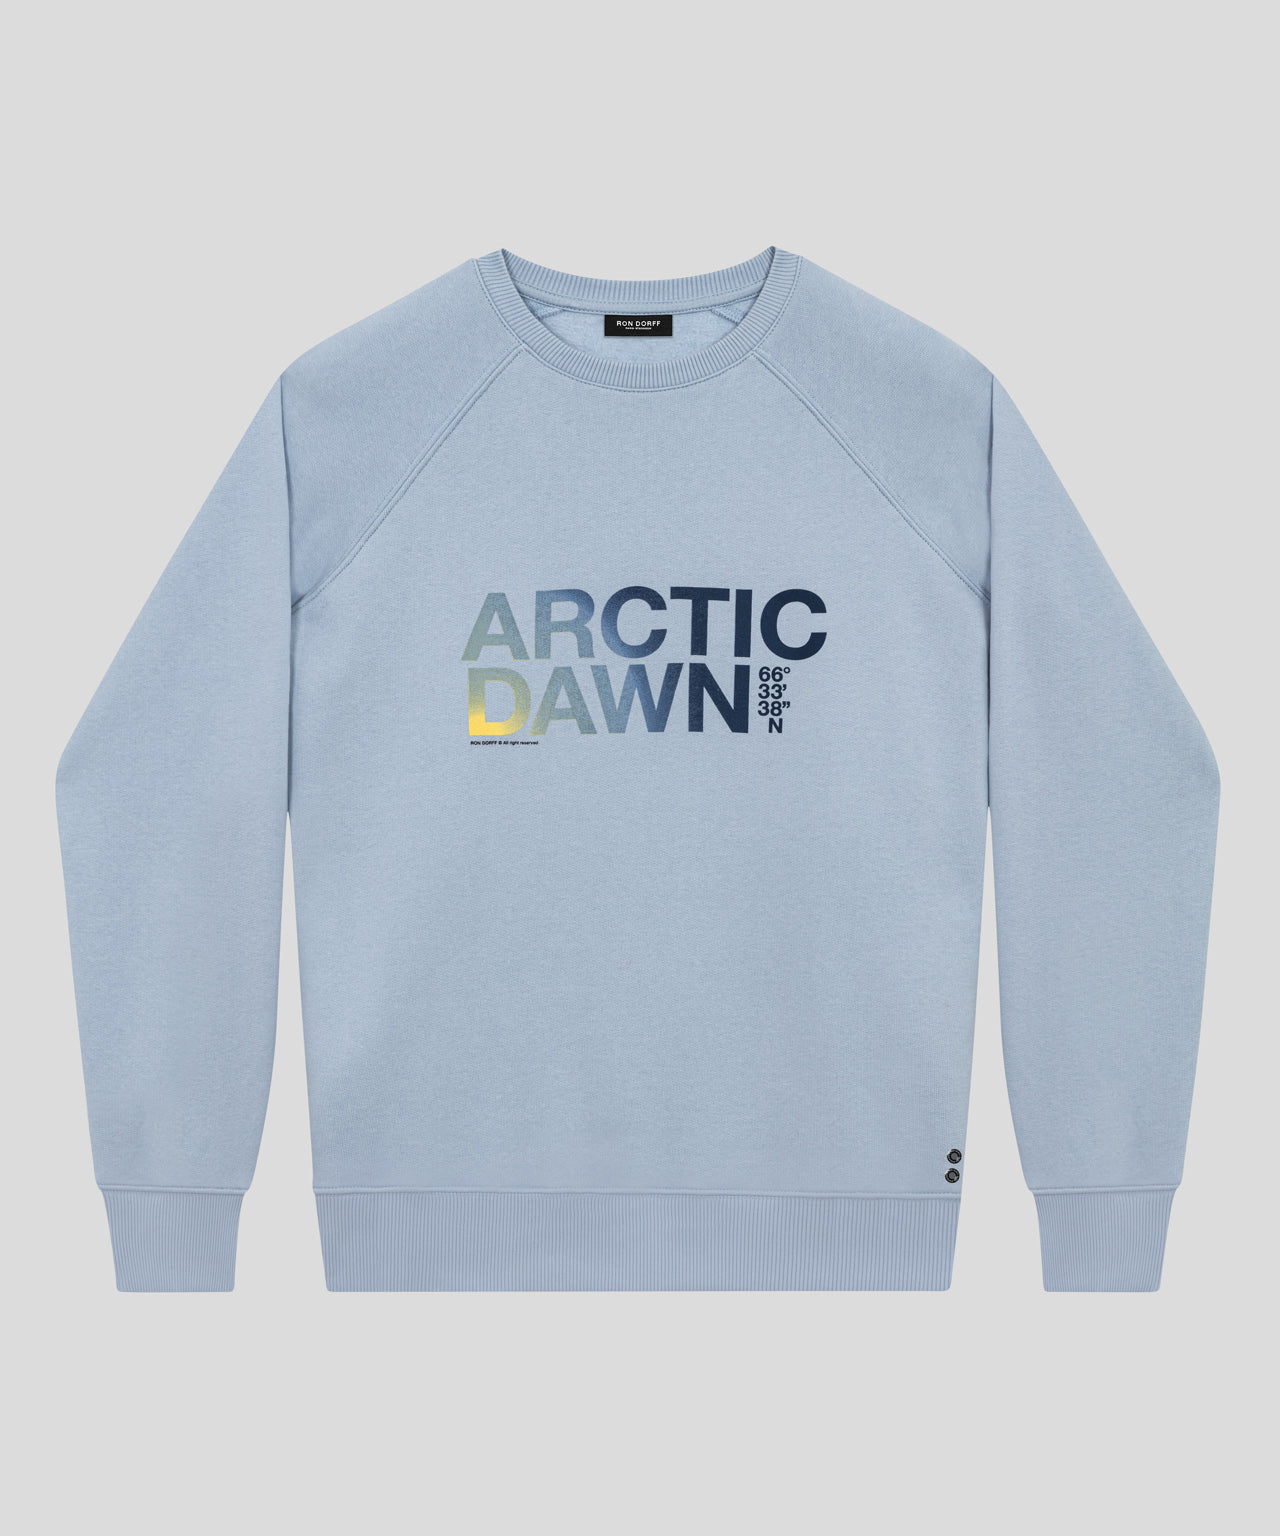 Sweatshirt ARCTIC DAWN - frosty blue